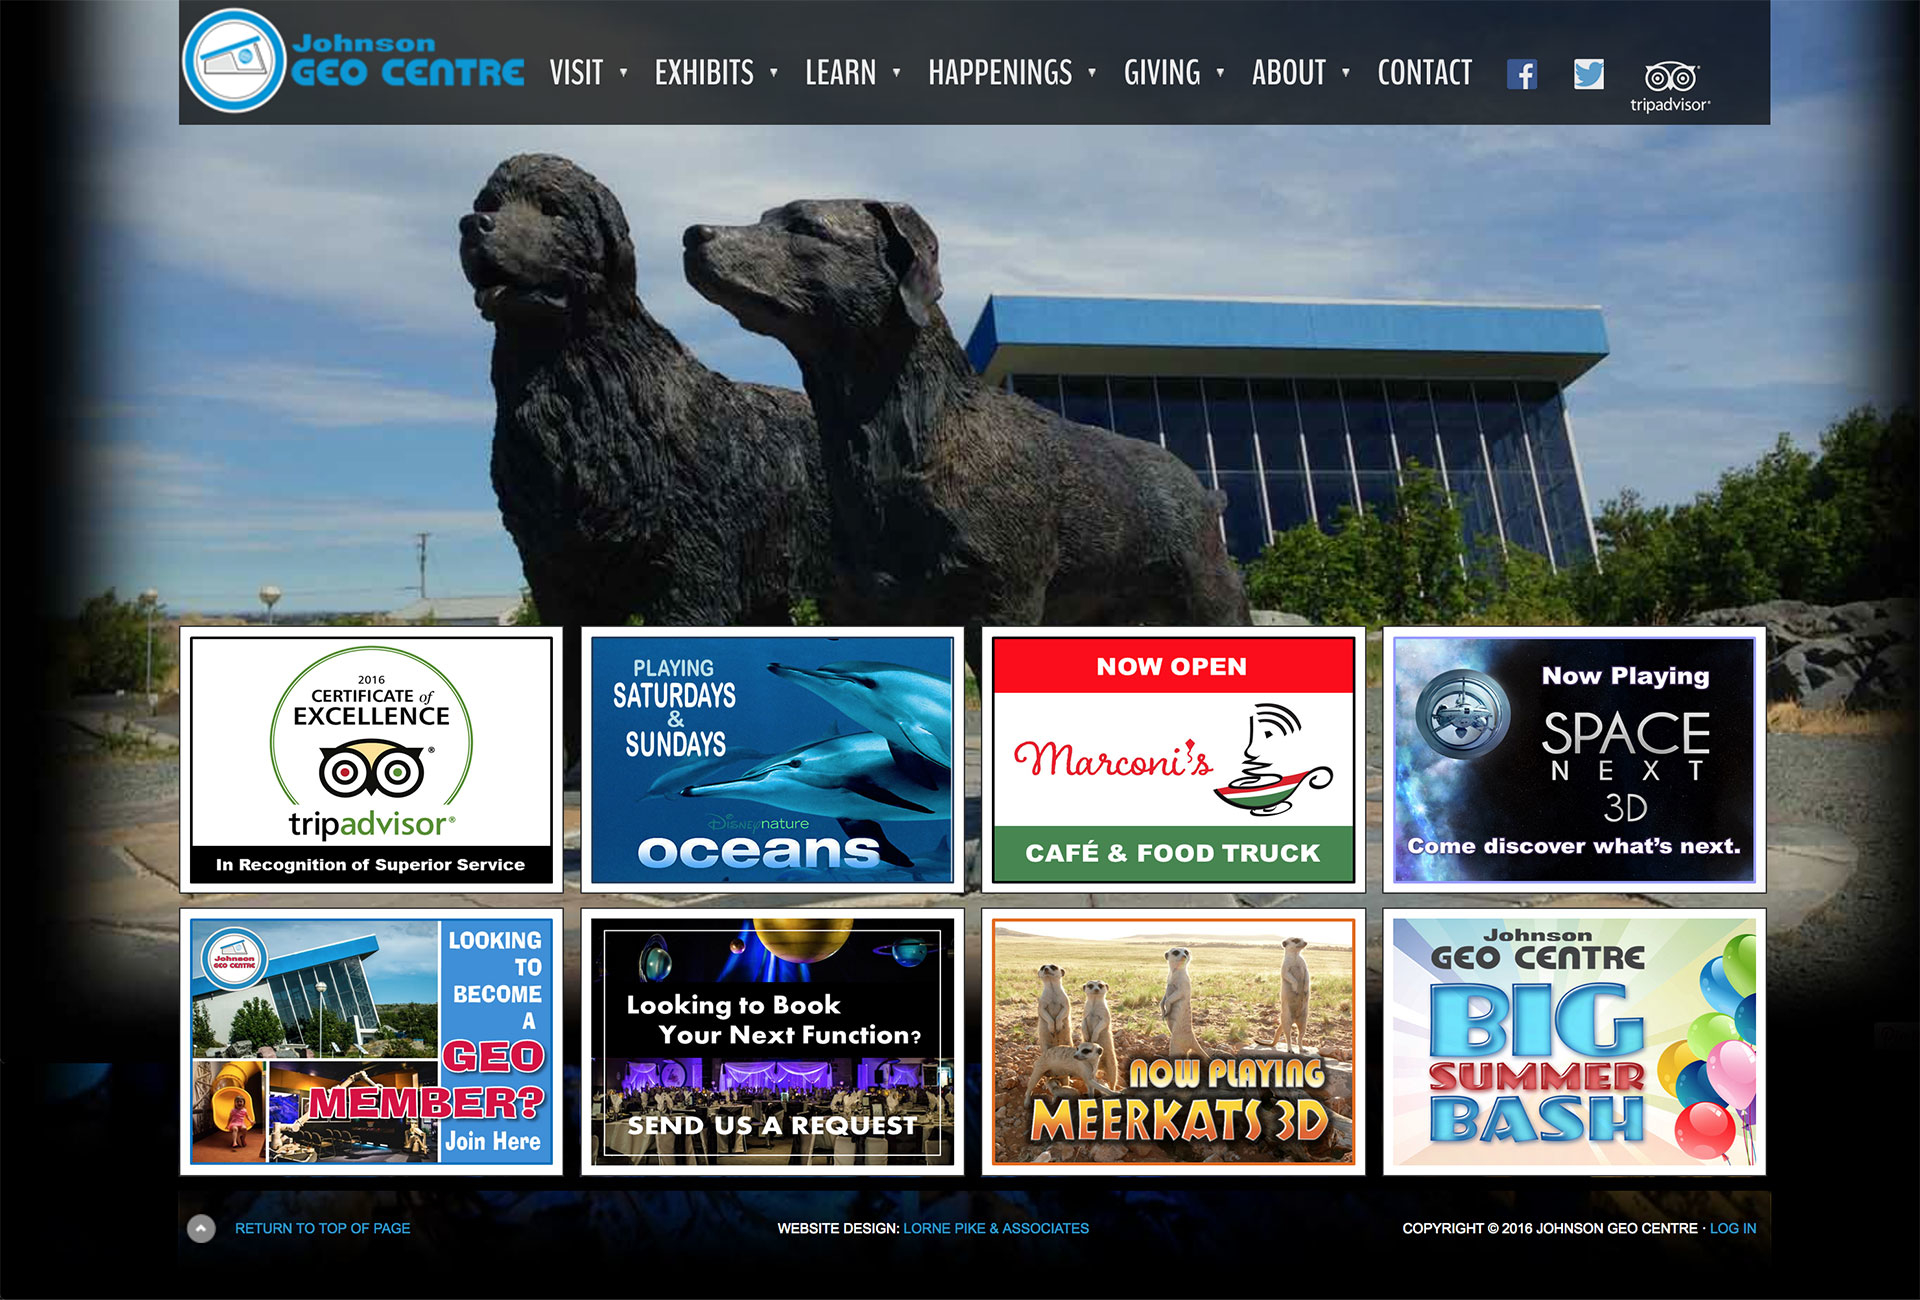 Lorne Pike & Associates in St. John's: Working with the Johnson GEO CENTRE, one of Canada's leading museums, since before they even opened, we have handled their marketing strategy, brochure design, and website design, which allows online ticket sales and rental bookings.